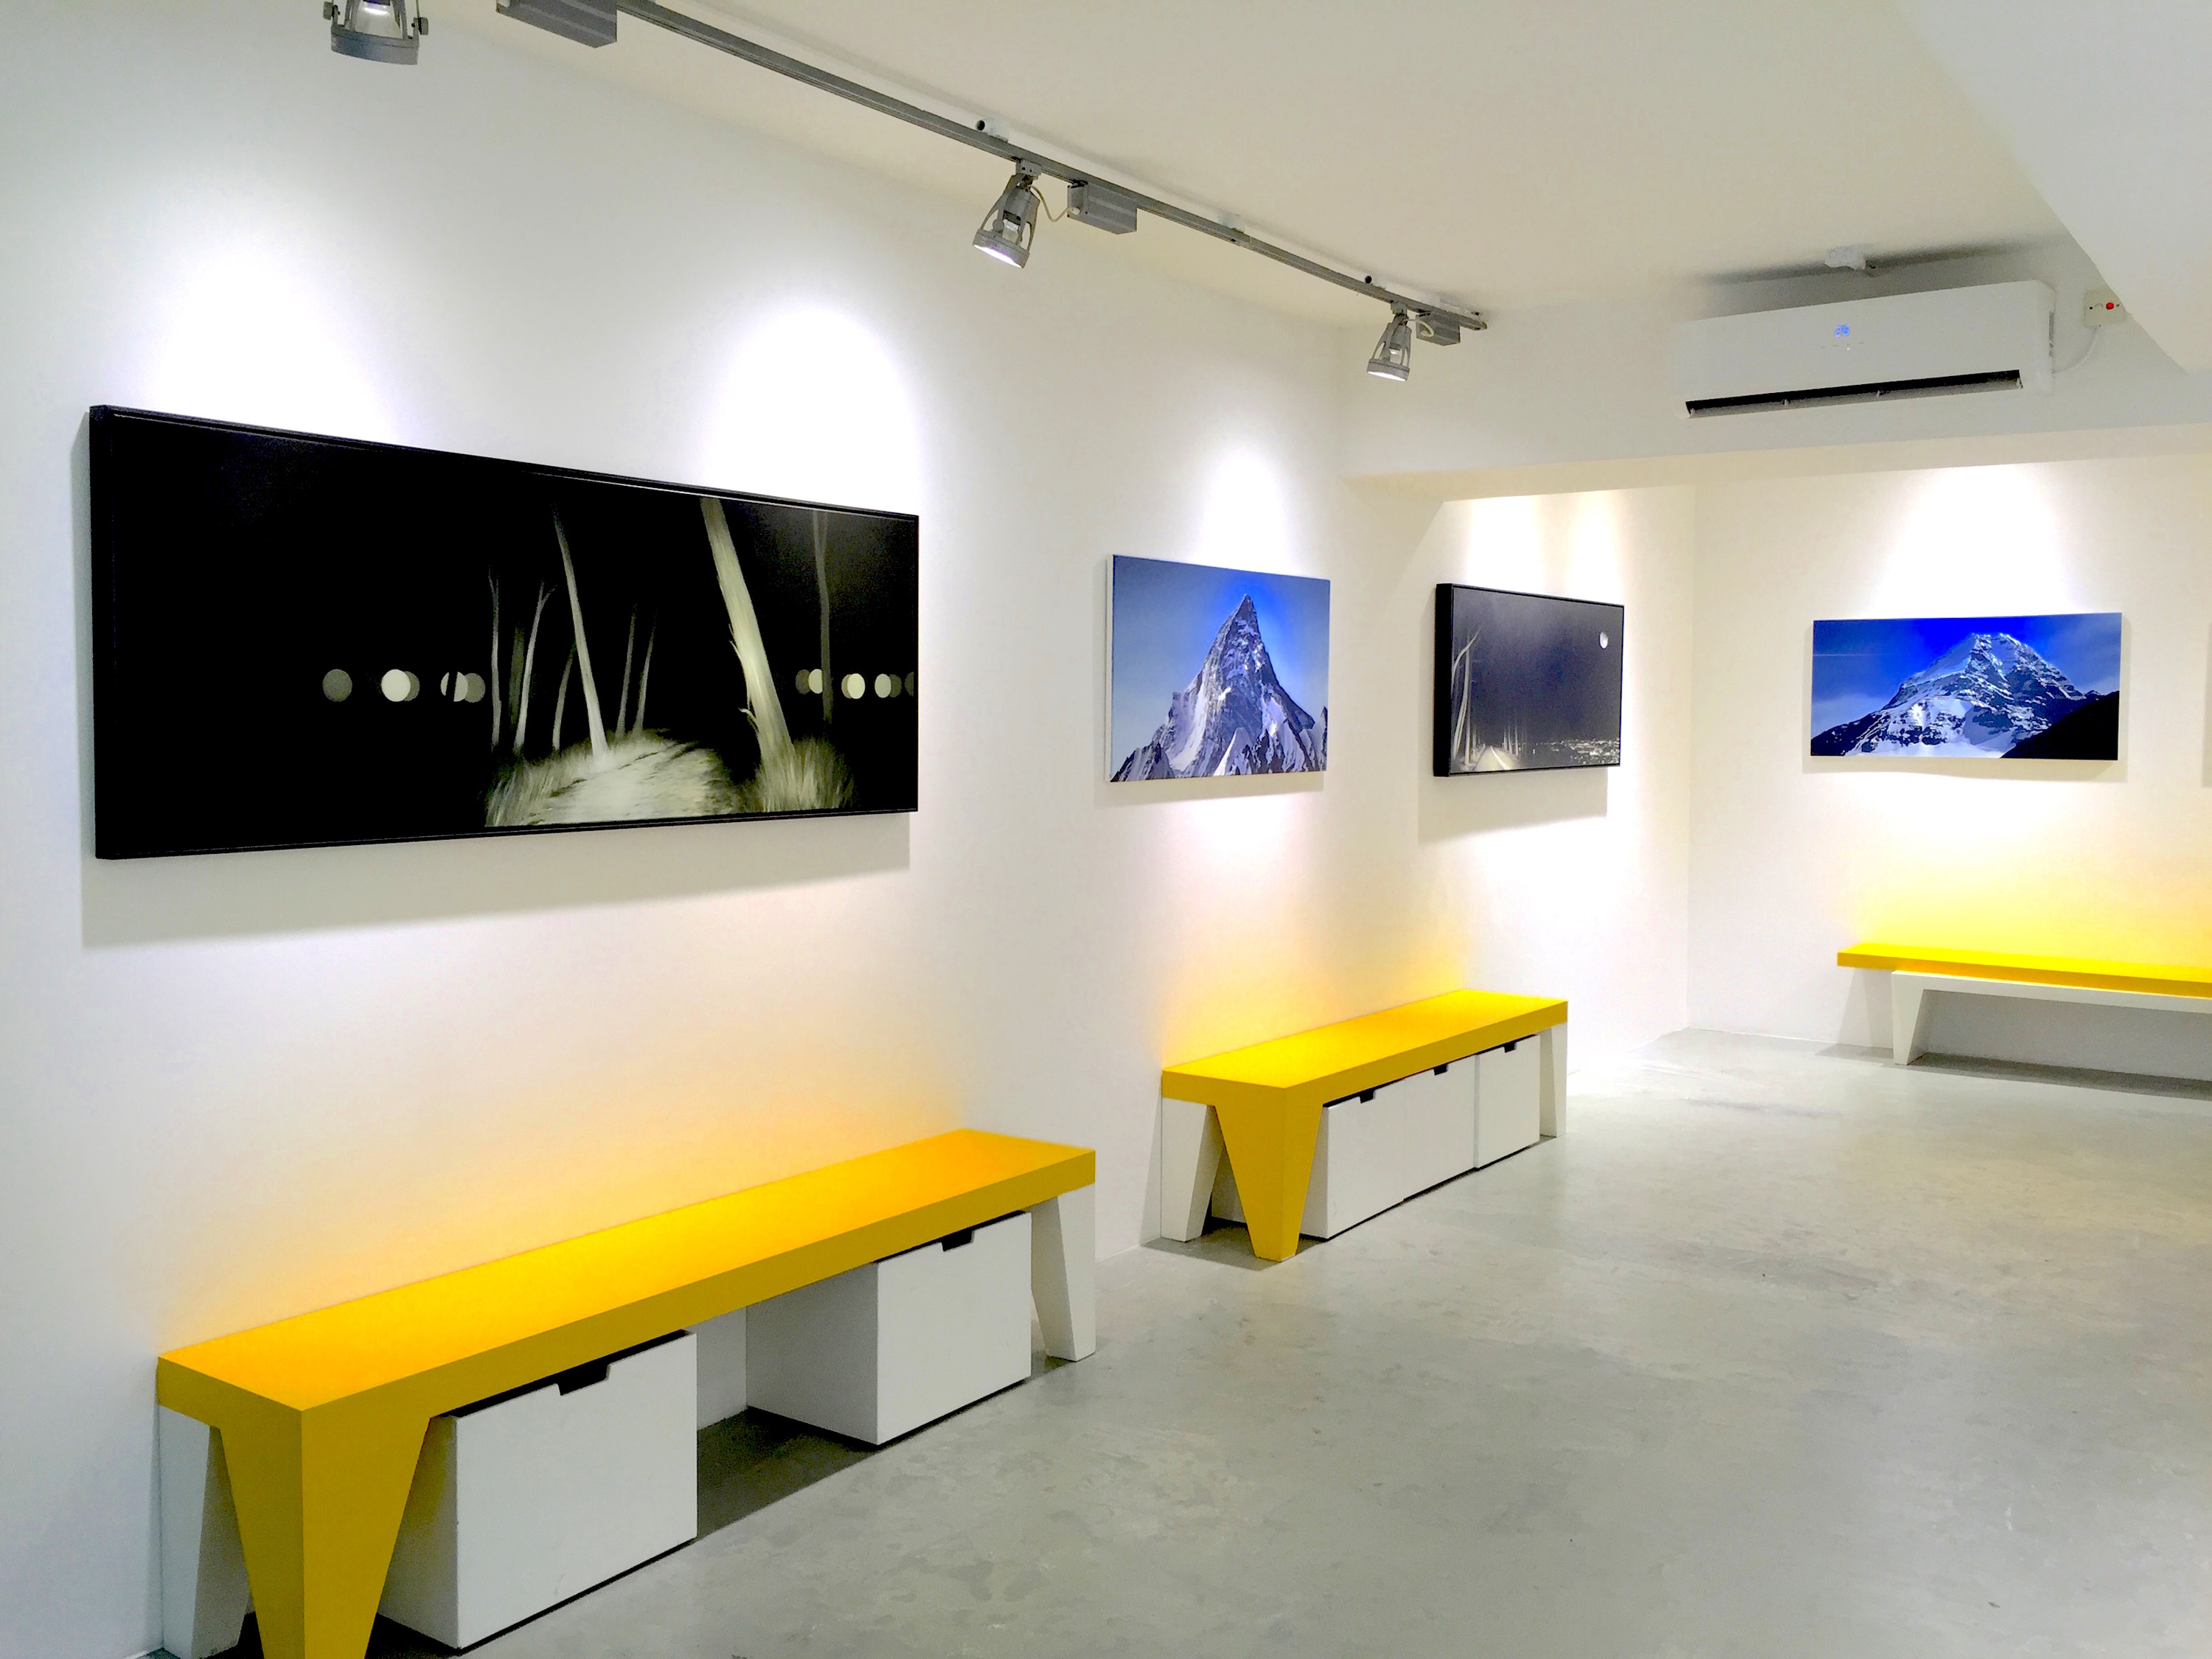 How to design an art gallery - The Cat Street Gallery